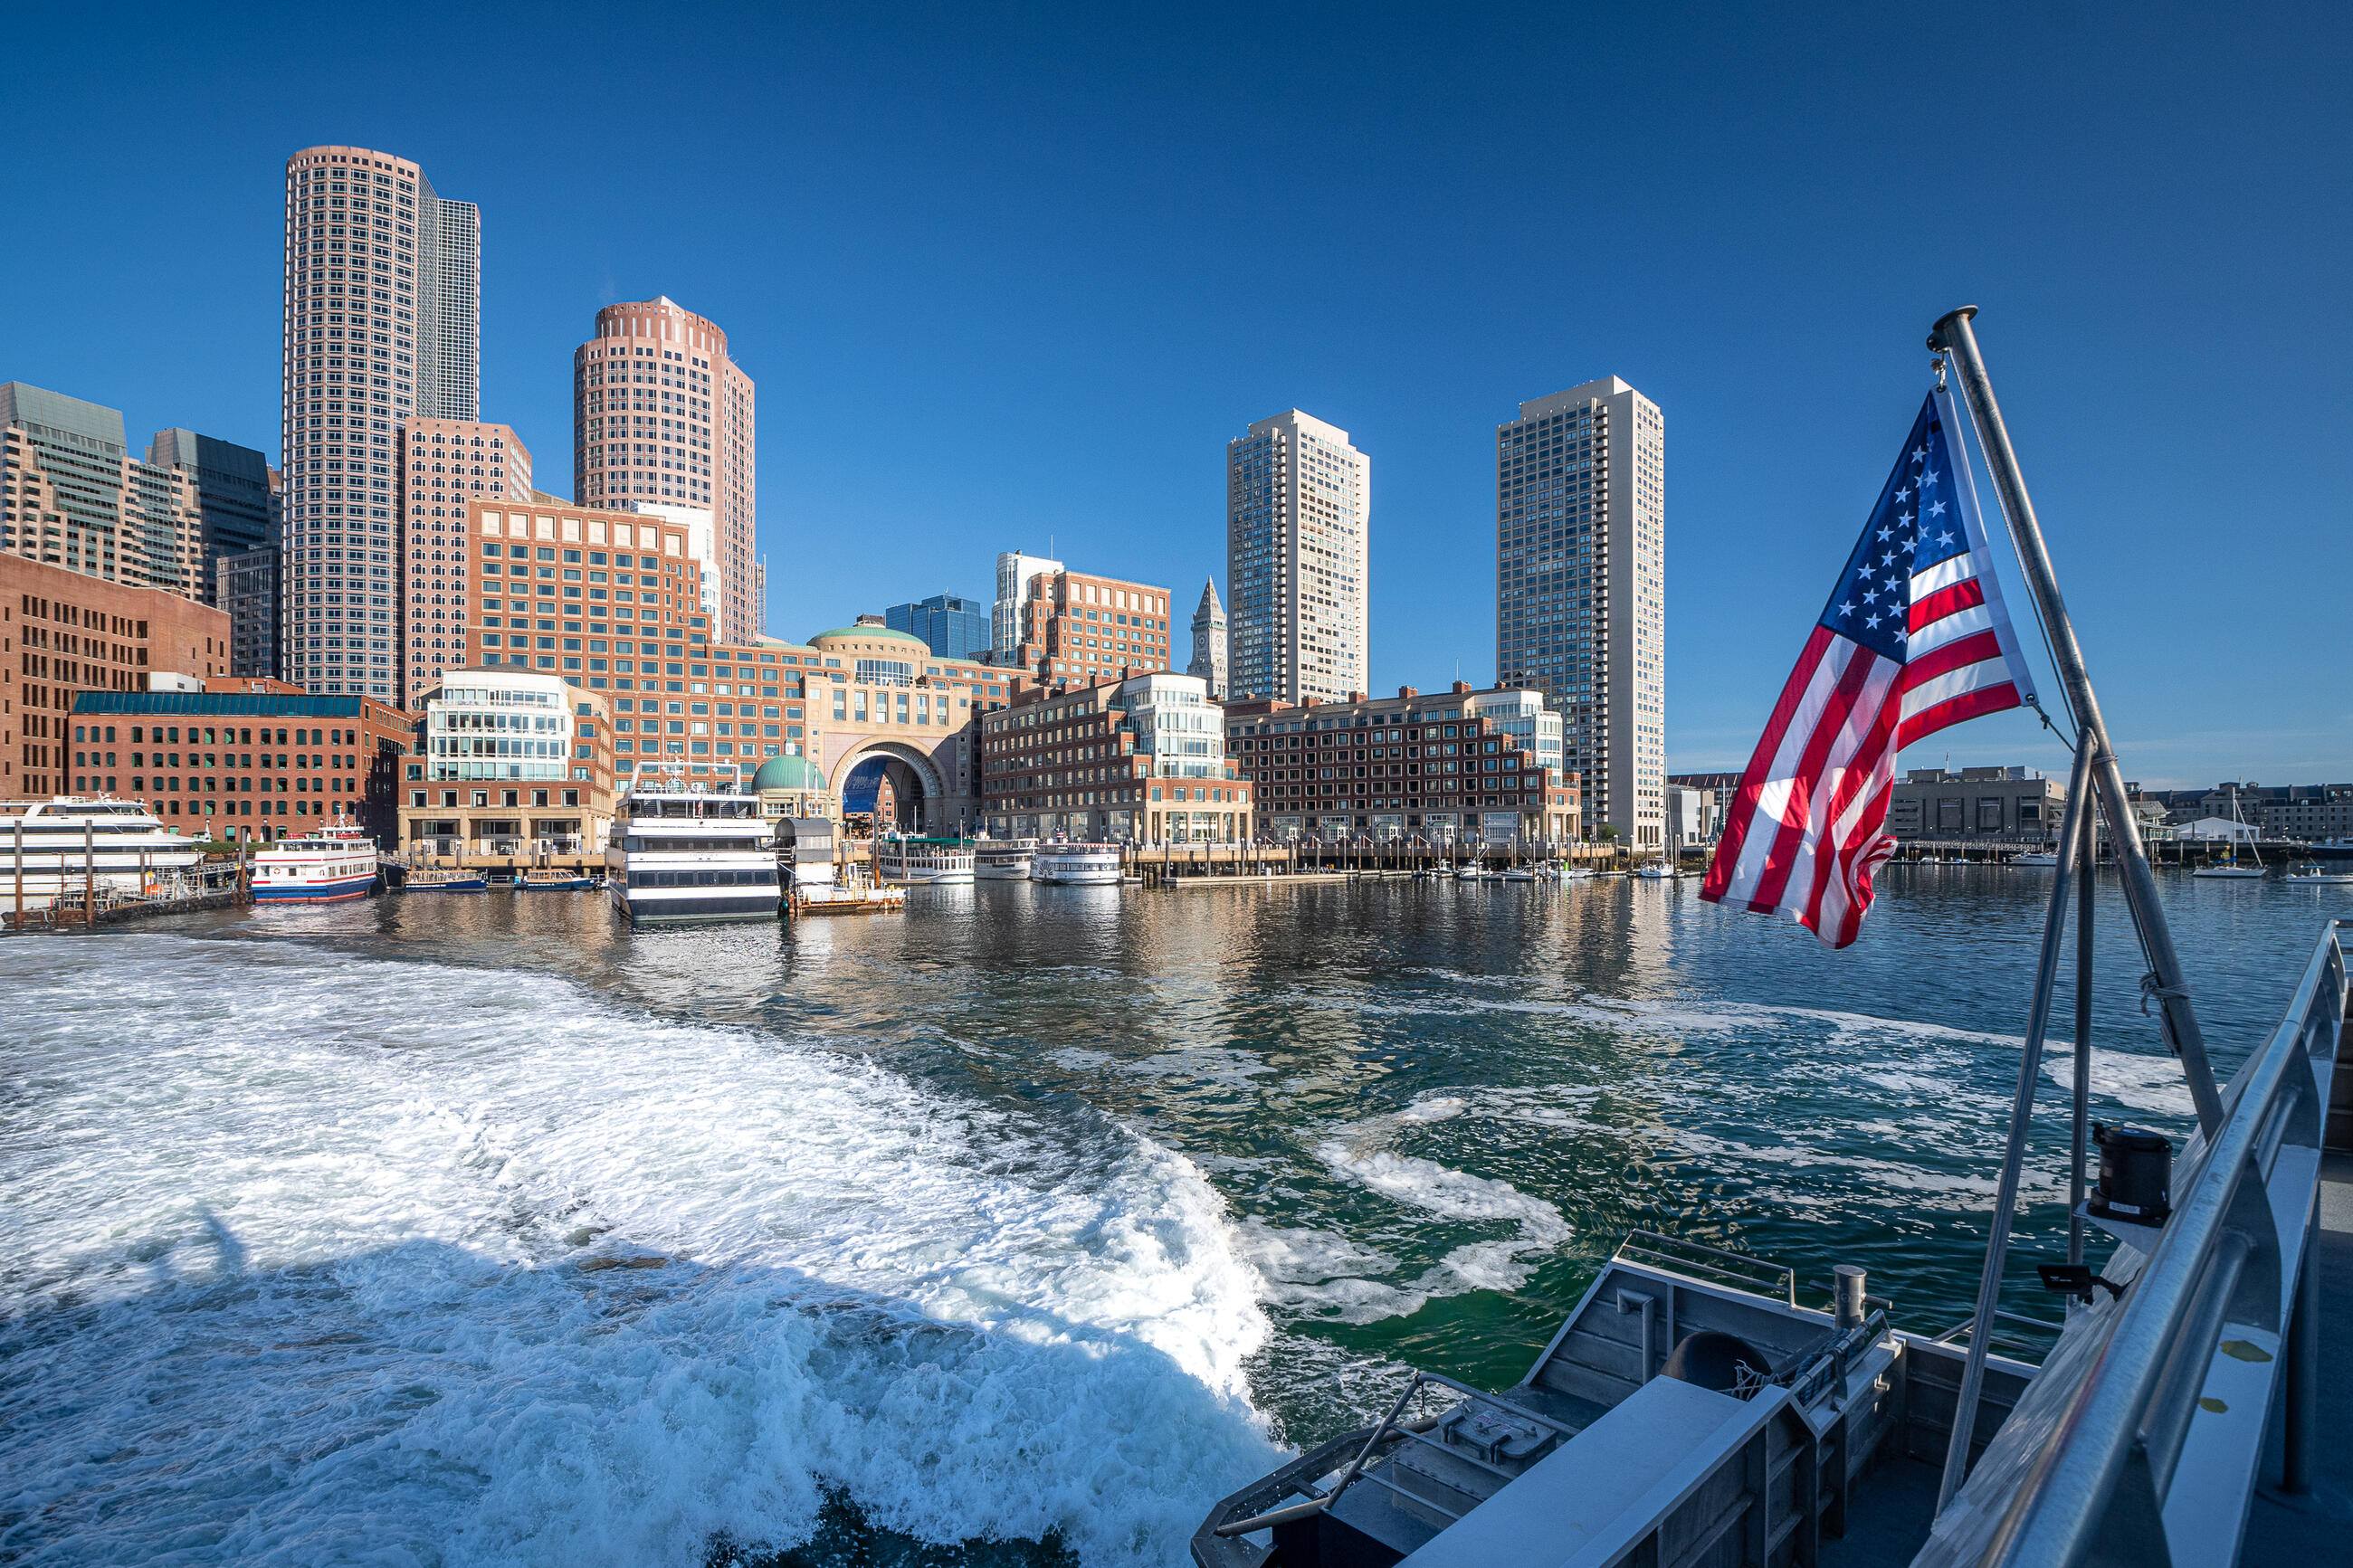 A photo of Rowes Wharf, taken from the ferry across the water. The water is white from the wake of the ferry moving in the water. A United States flag is flying at an angle from the side of the boat, and the sky is a bright clear blue